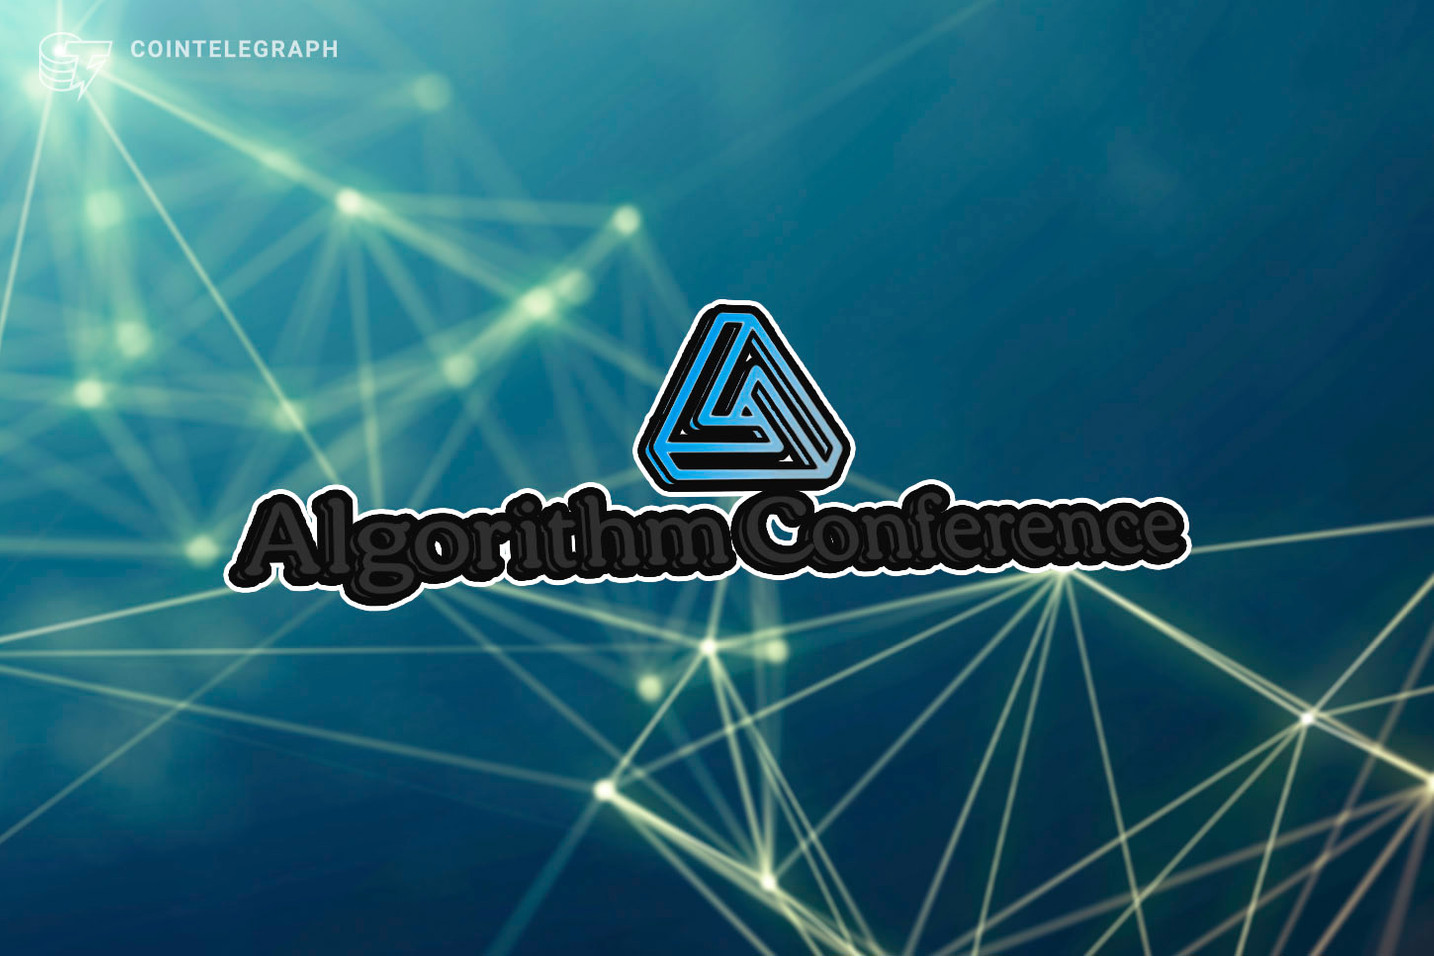 Algorithm Conference Has Been Rescheduled to February 2021 in Dallas